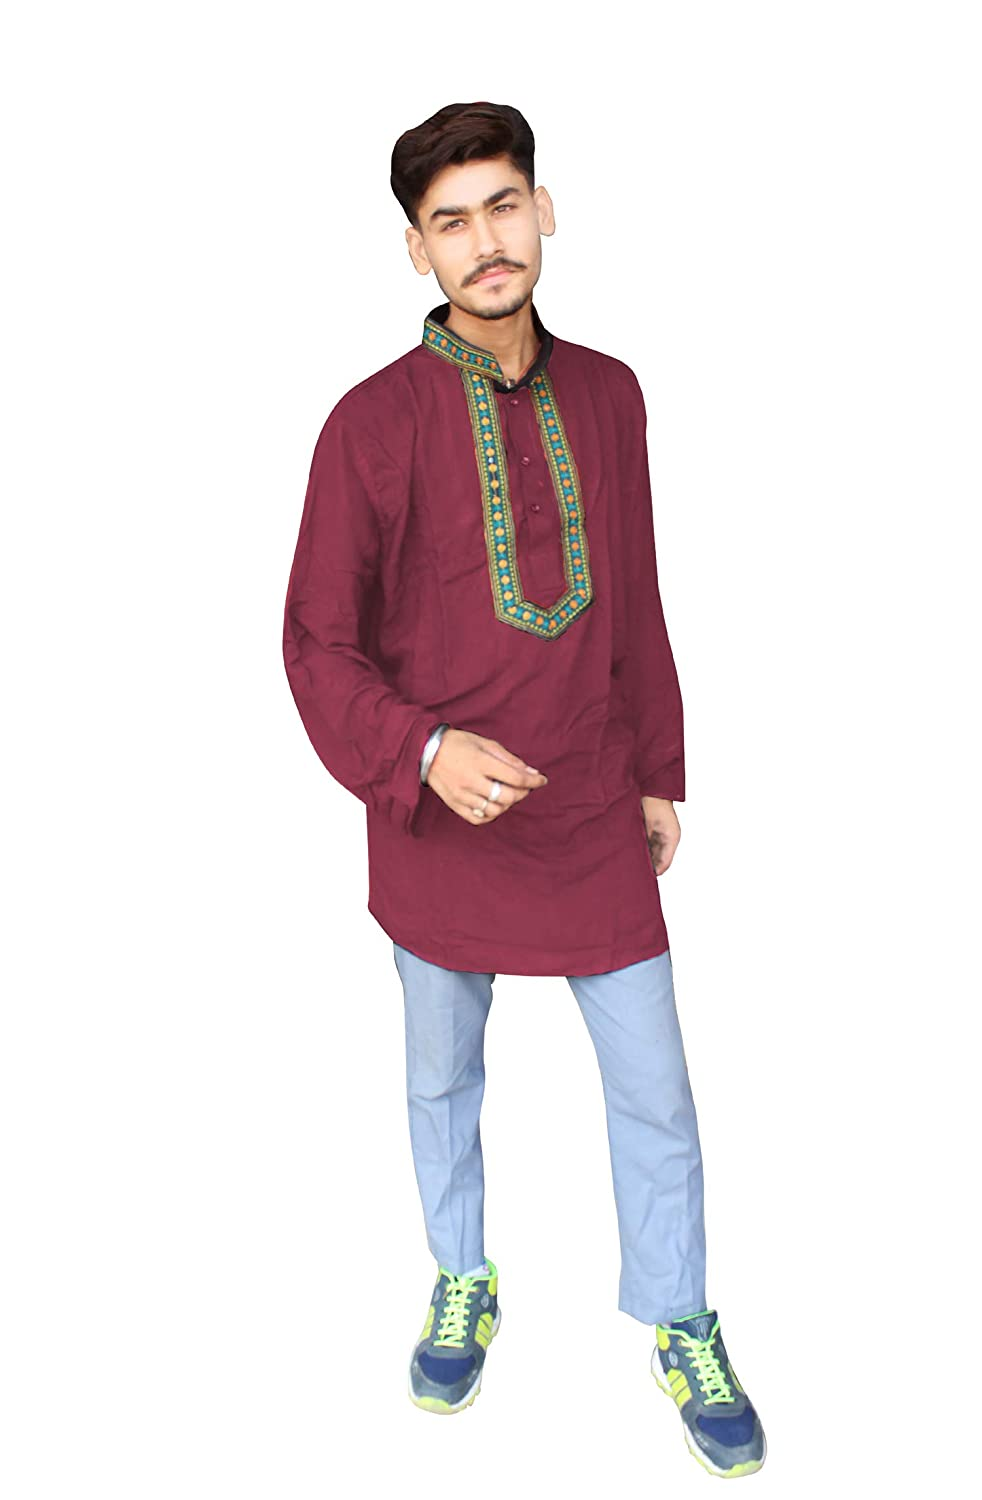 Lakkar Haveli Embroidered Mens Kurta Casual Loose Fit Tunic Ethnic Dark Pink Shirt Bohemian Plus Size